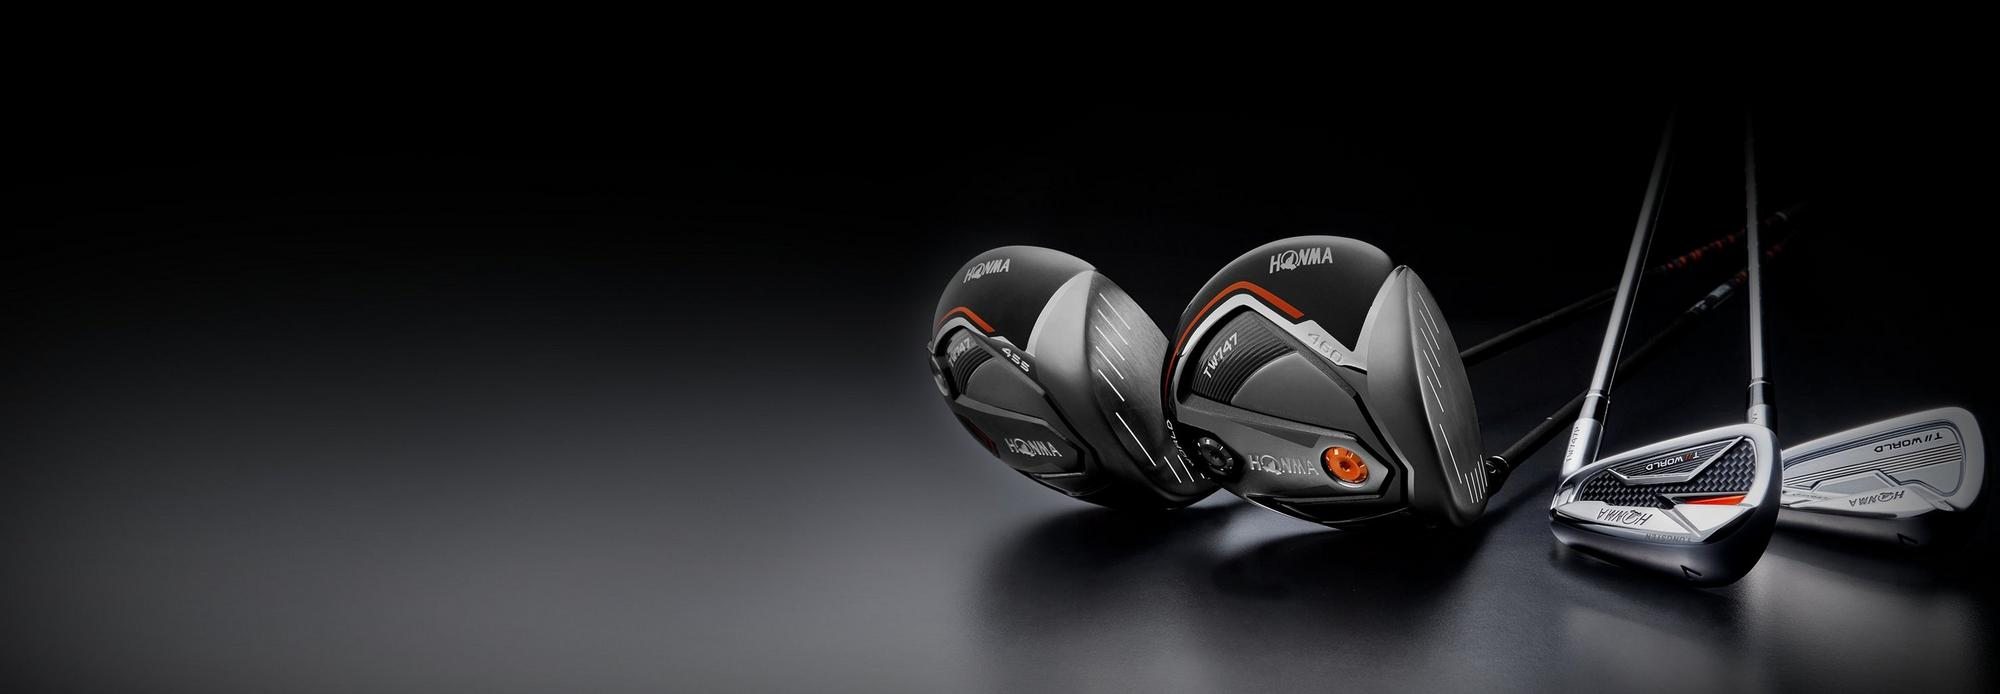 Honma TW-747 Clubs Available Now